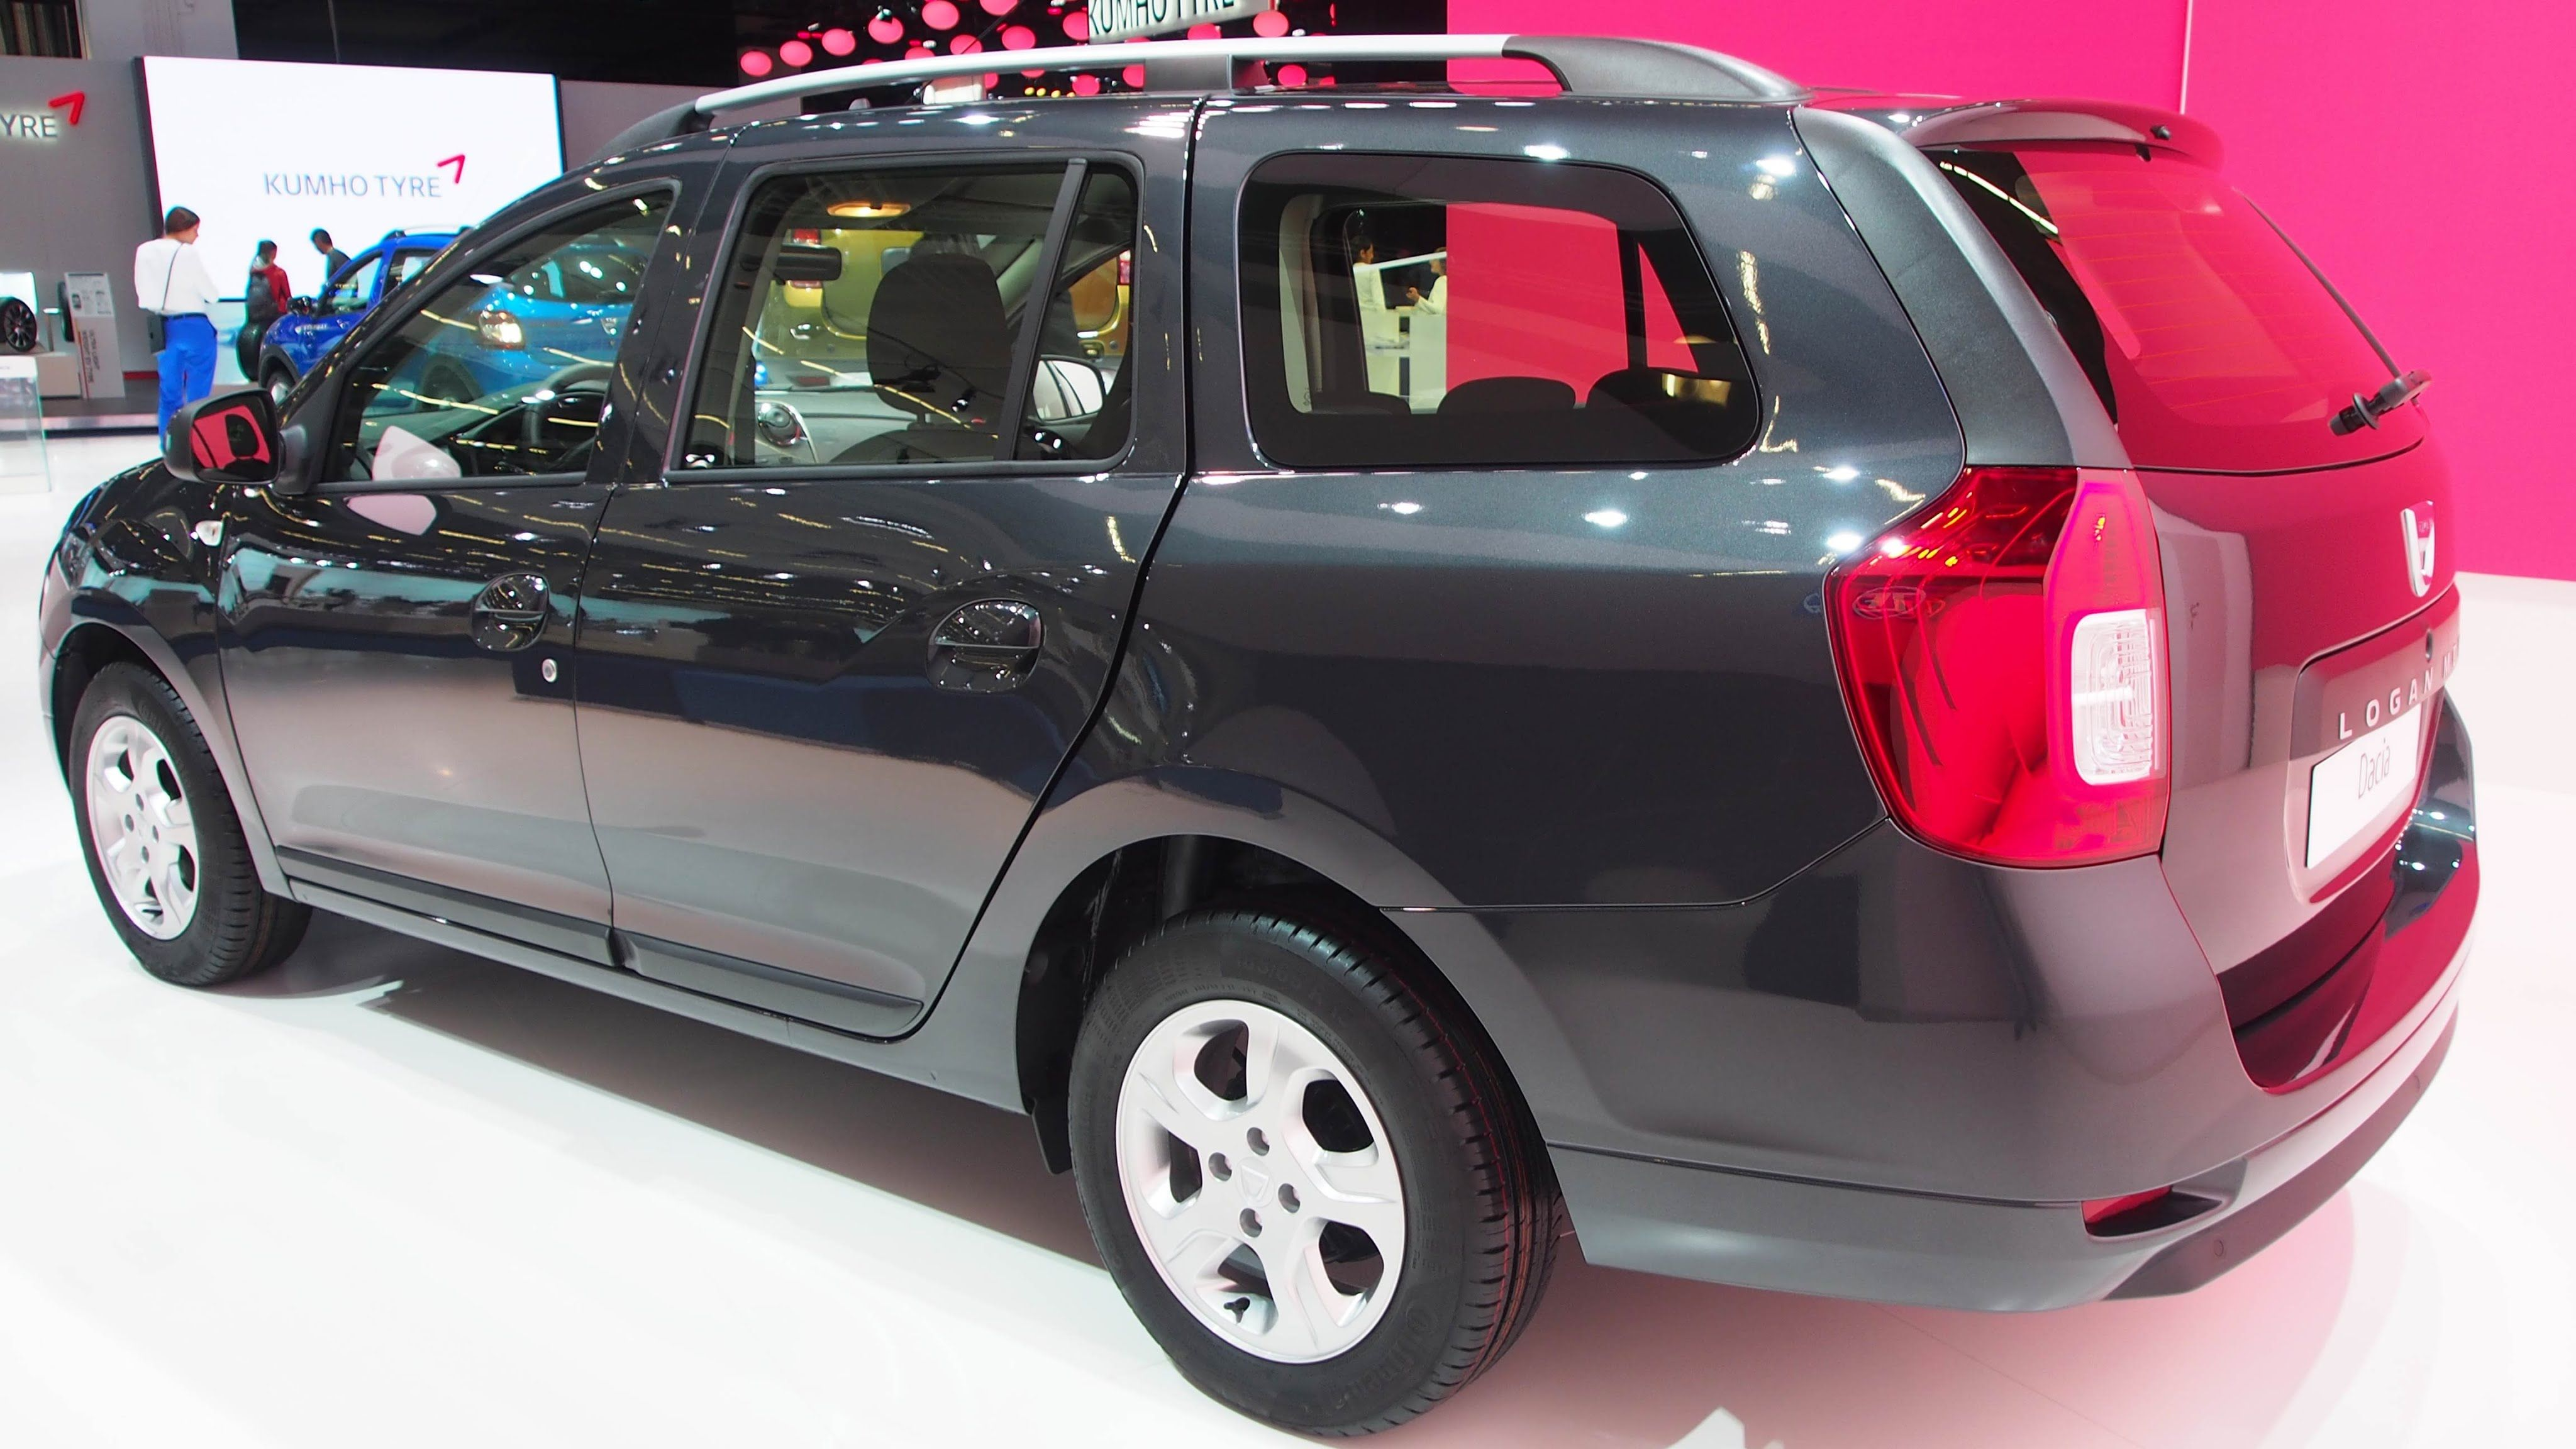 New Model Dacia Logan Hd Image Ready To Set Up Your Widescreen